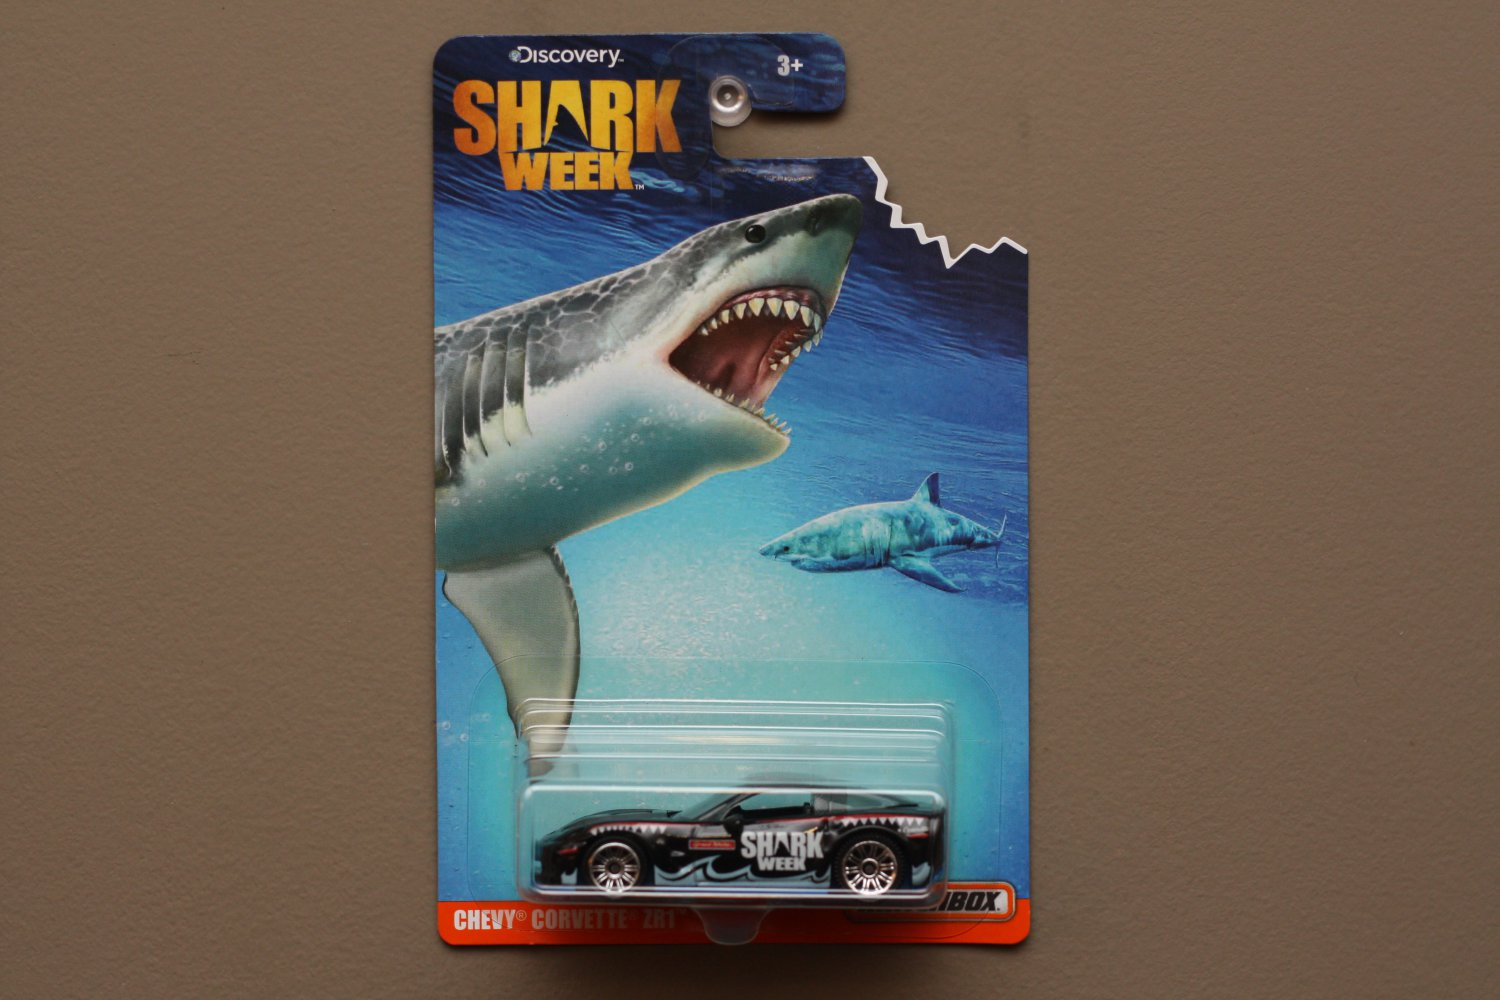 Matchbox 2016 Discovery Shark Week Chevy Corvette ZR1